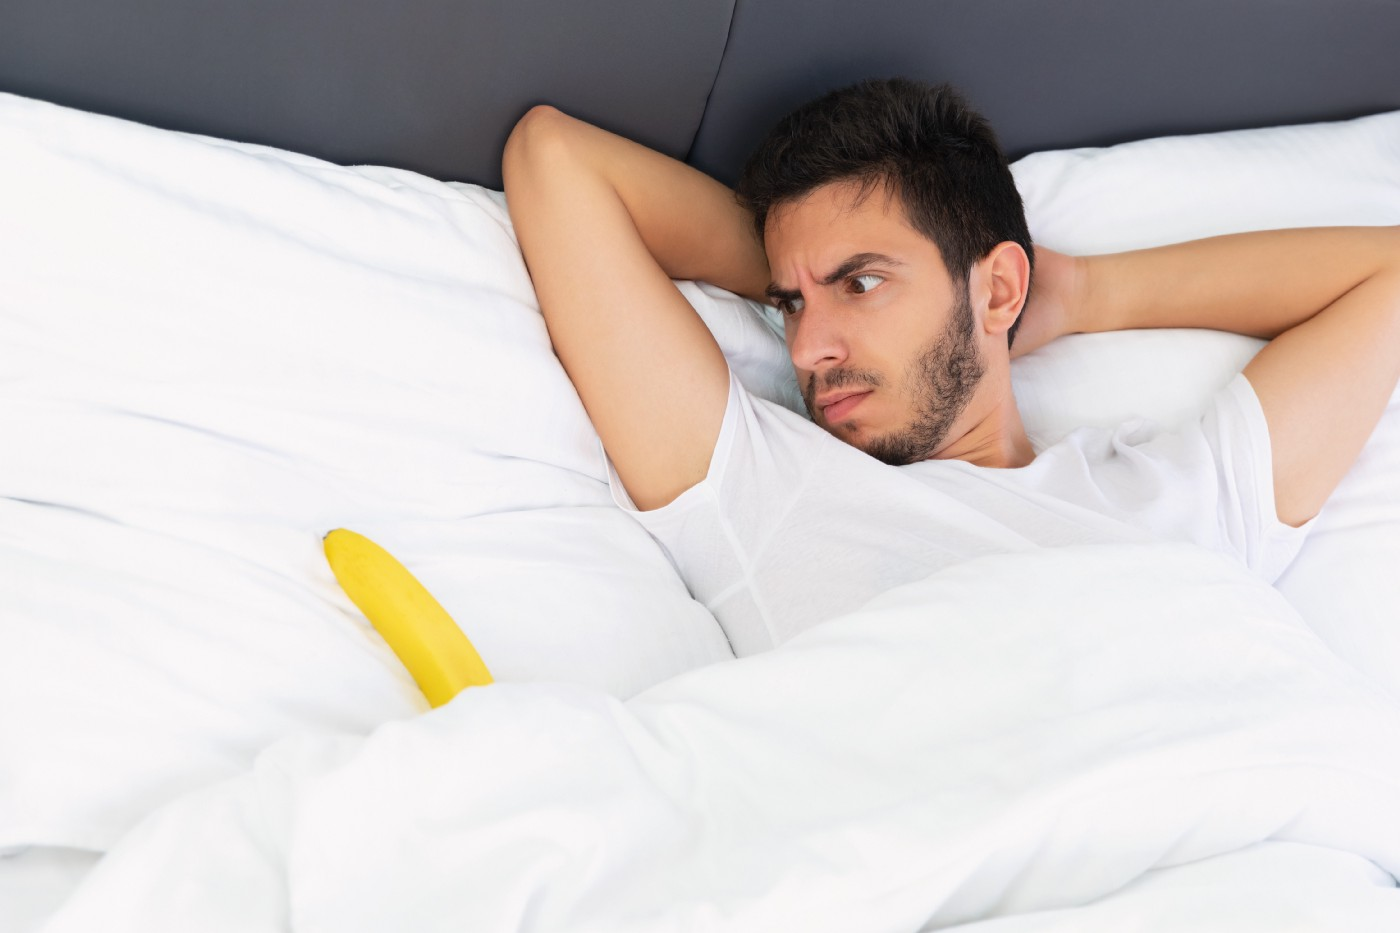 A young man in a white teeshirt looks perplexed at he stares at a banana emerging from behind the sheets